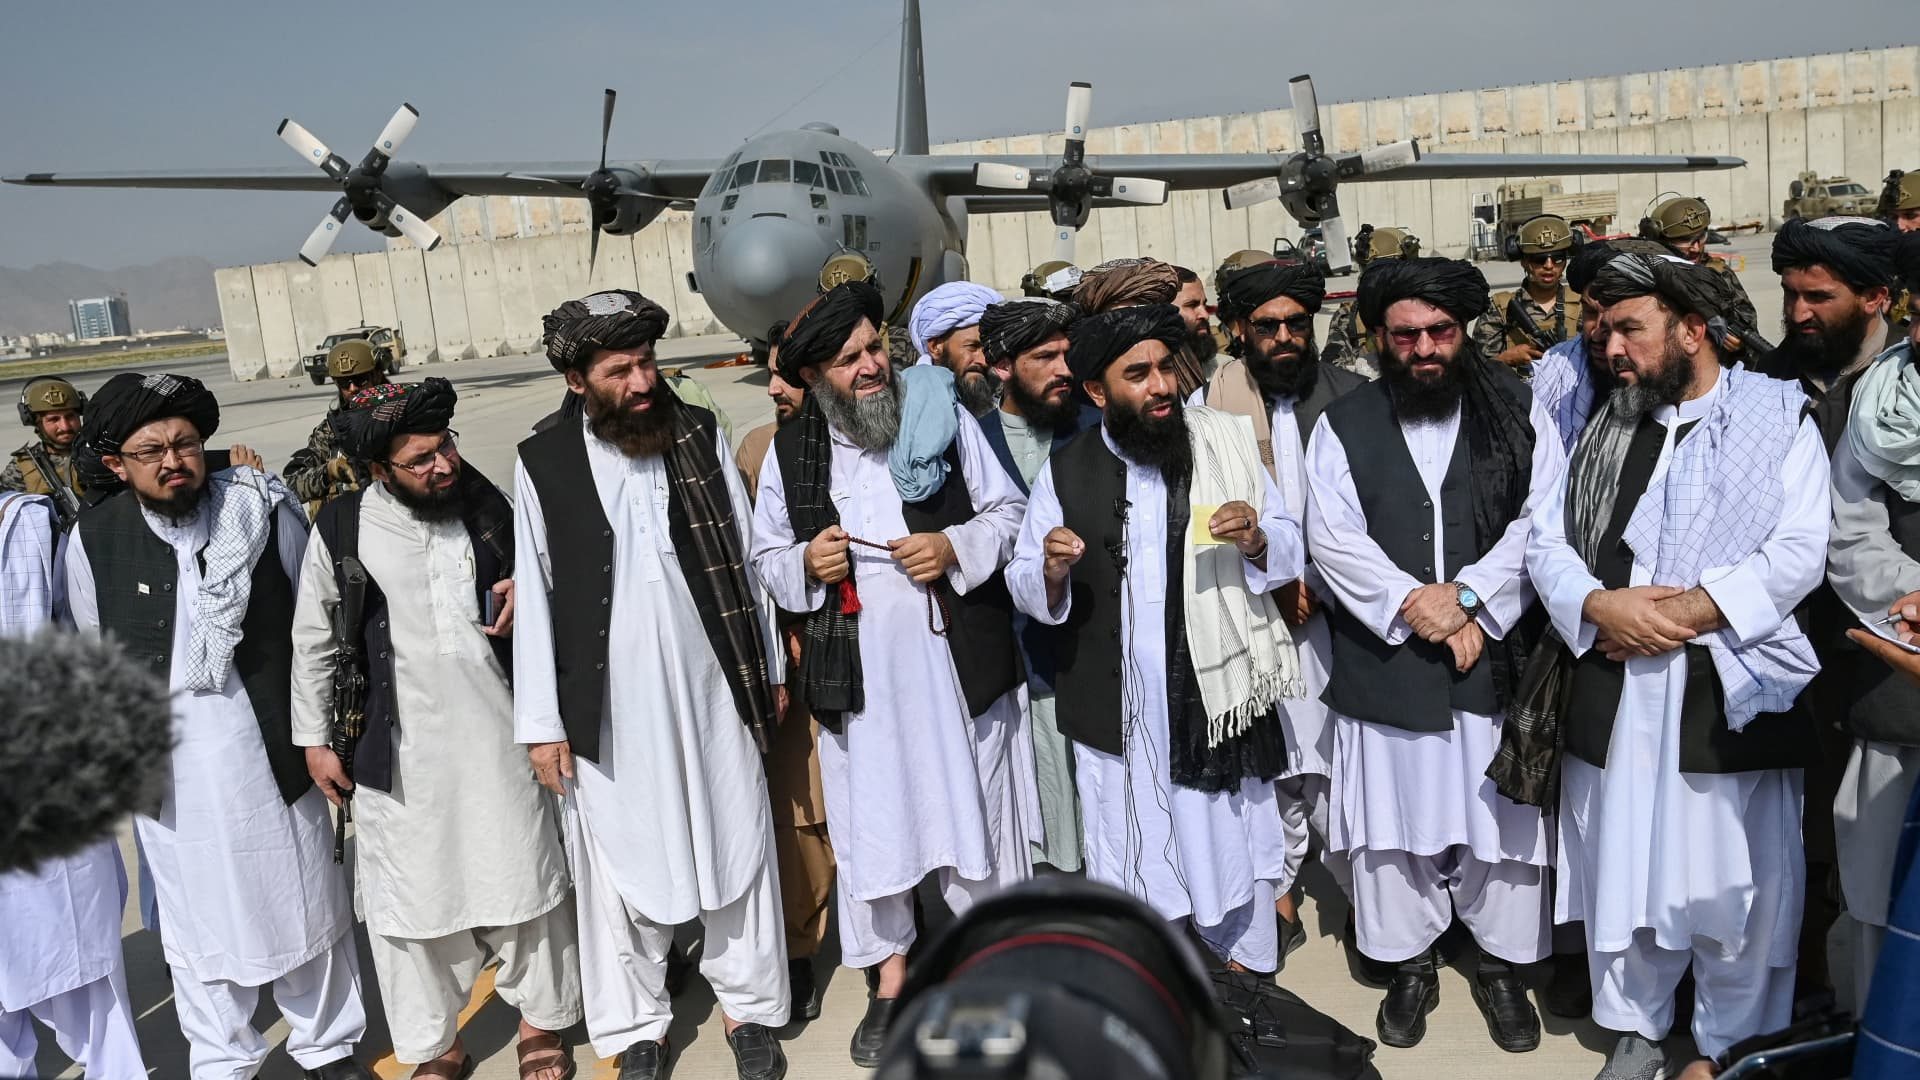 Taliban spokesman Zabihullah Mujahid (C, with shawl) speaks to the media at the airport in Kabul on August 31, 2021.